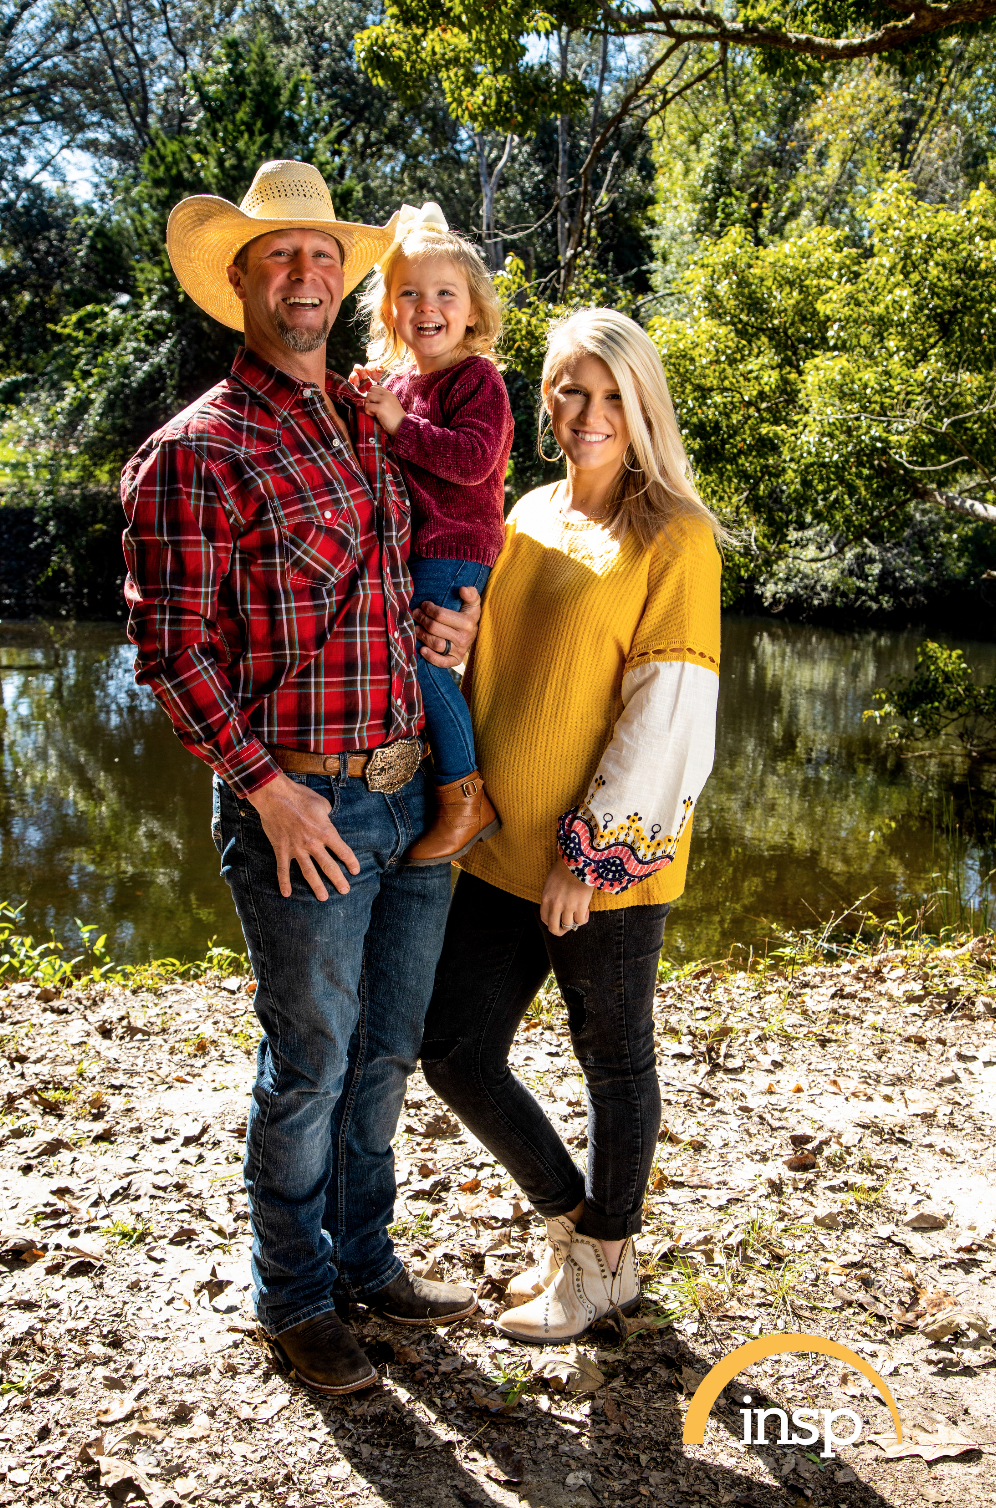 """The Cowboy Way"" star Bubba Thompson and his wife Kaley pose with their kids. 